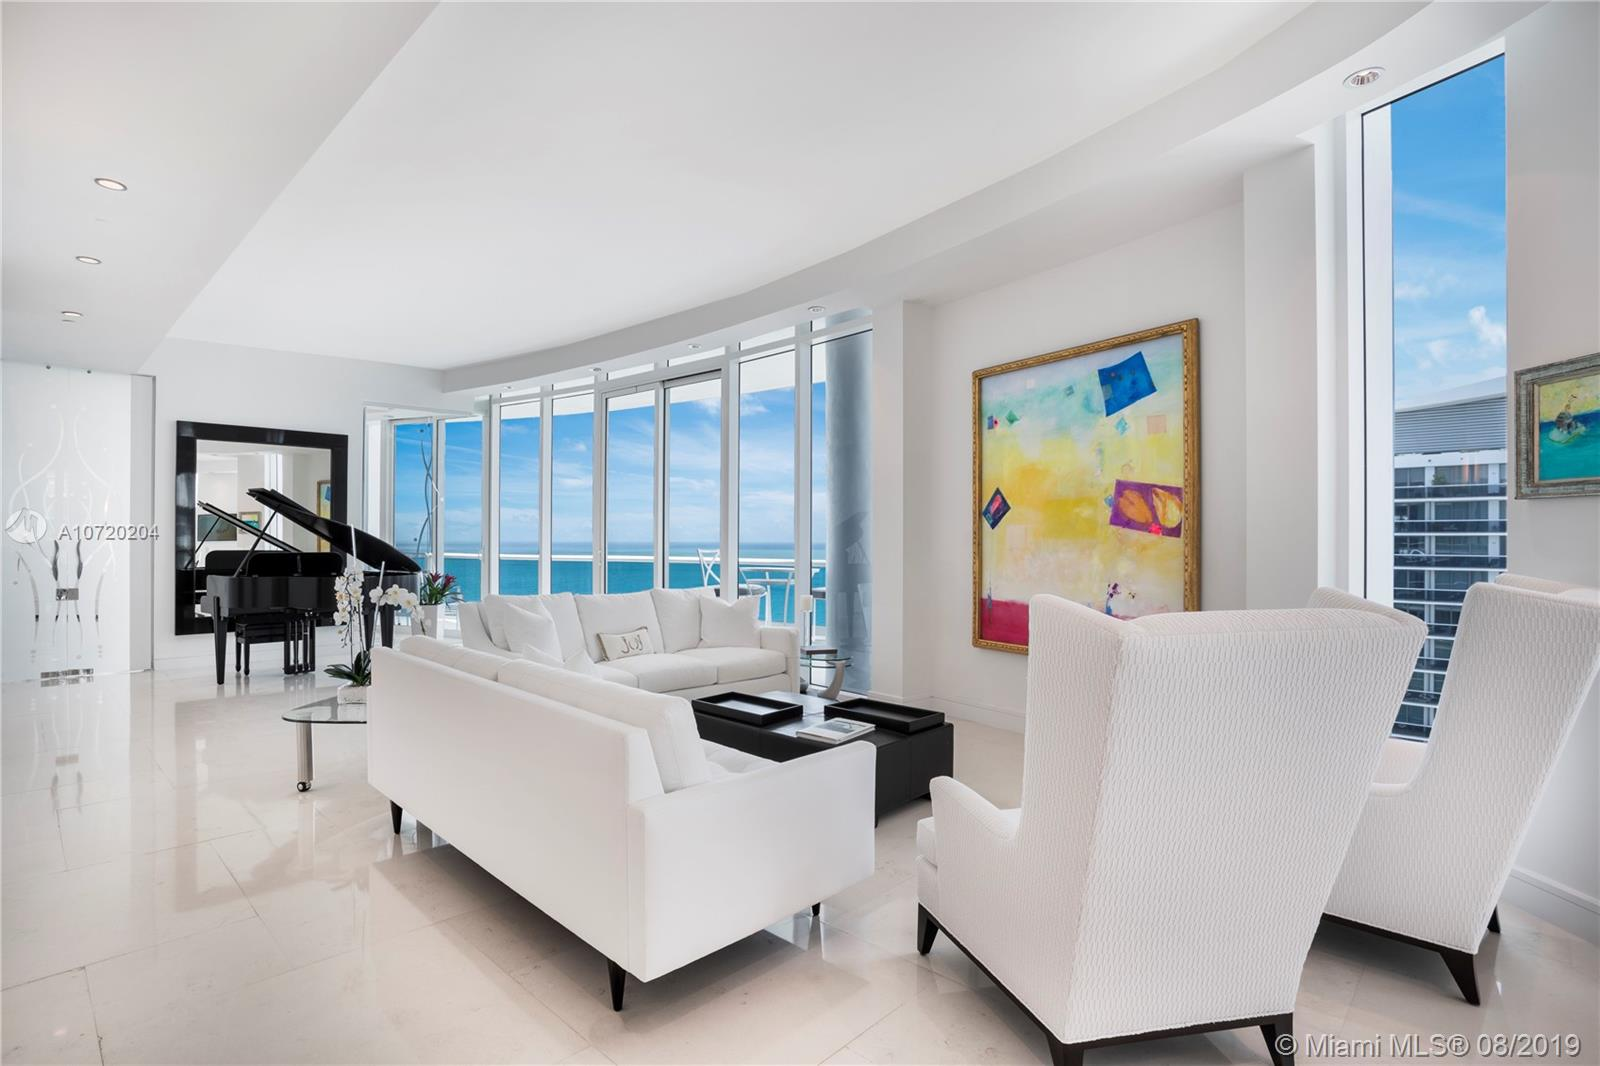 5959 Collins Ave, Unit #1901/1902 Luxury Real Estate